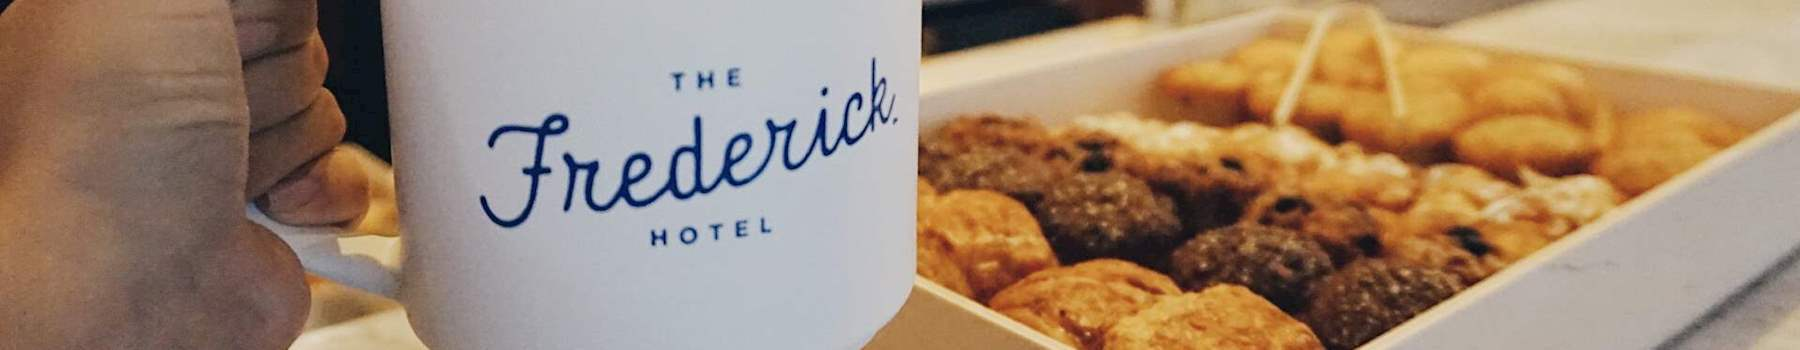 Rise and Dine at The Frederick Hotel